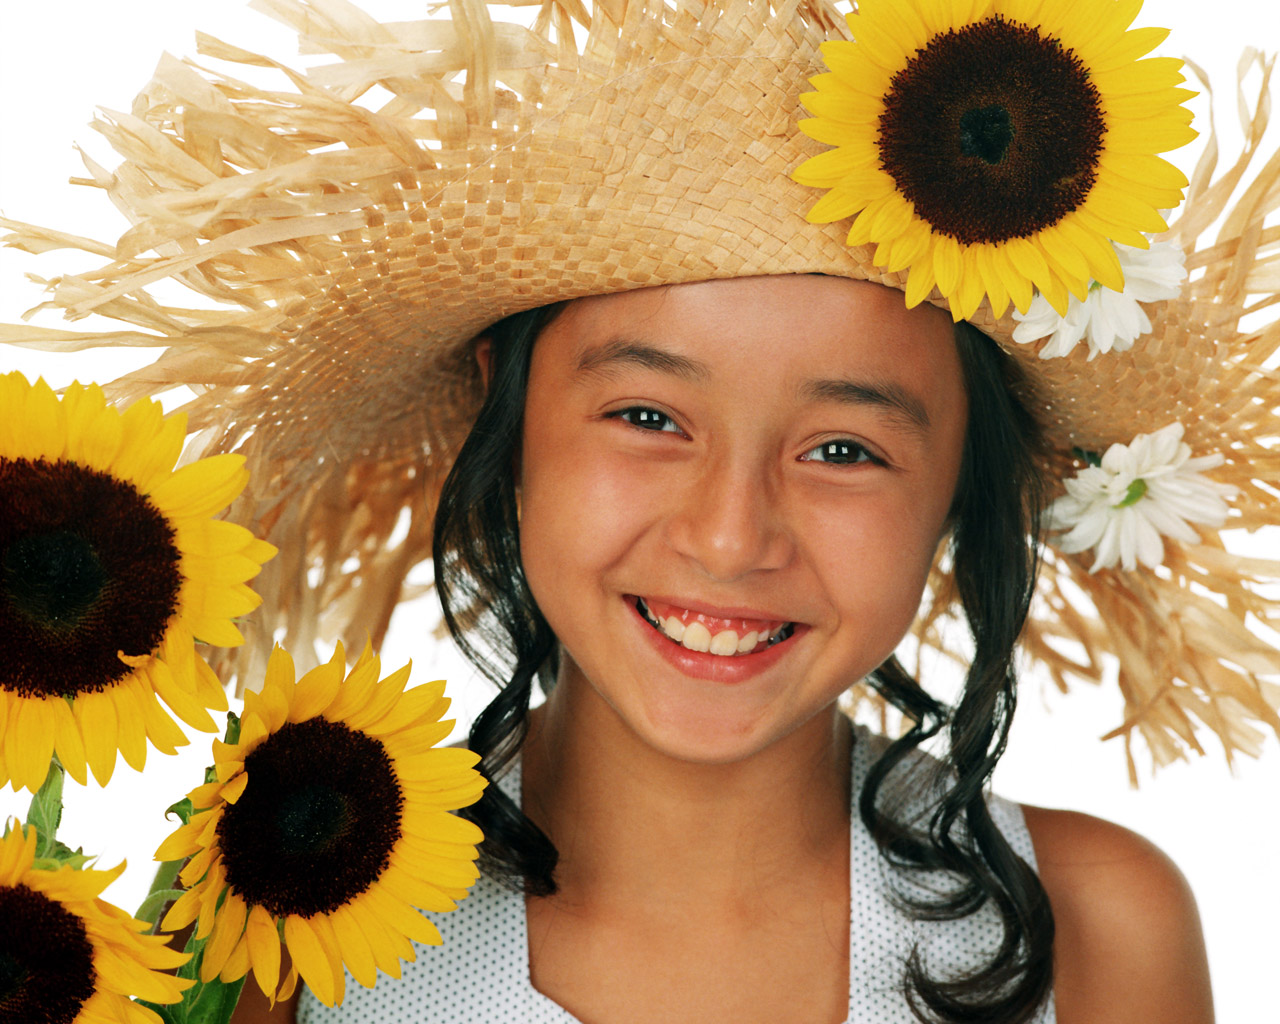 Cute Girl Sunflower Hat - Cute Girl Sunflower Hat